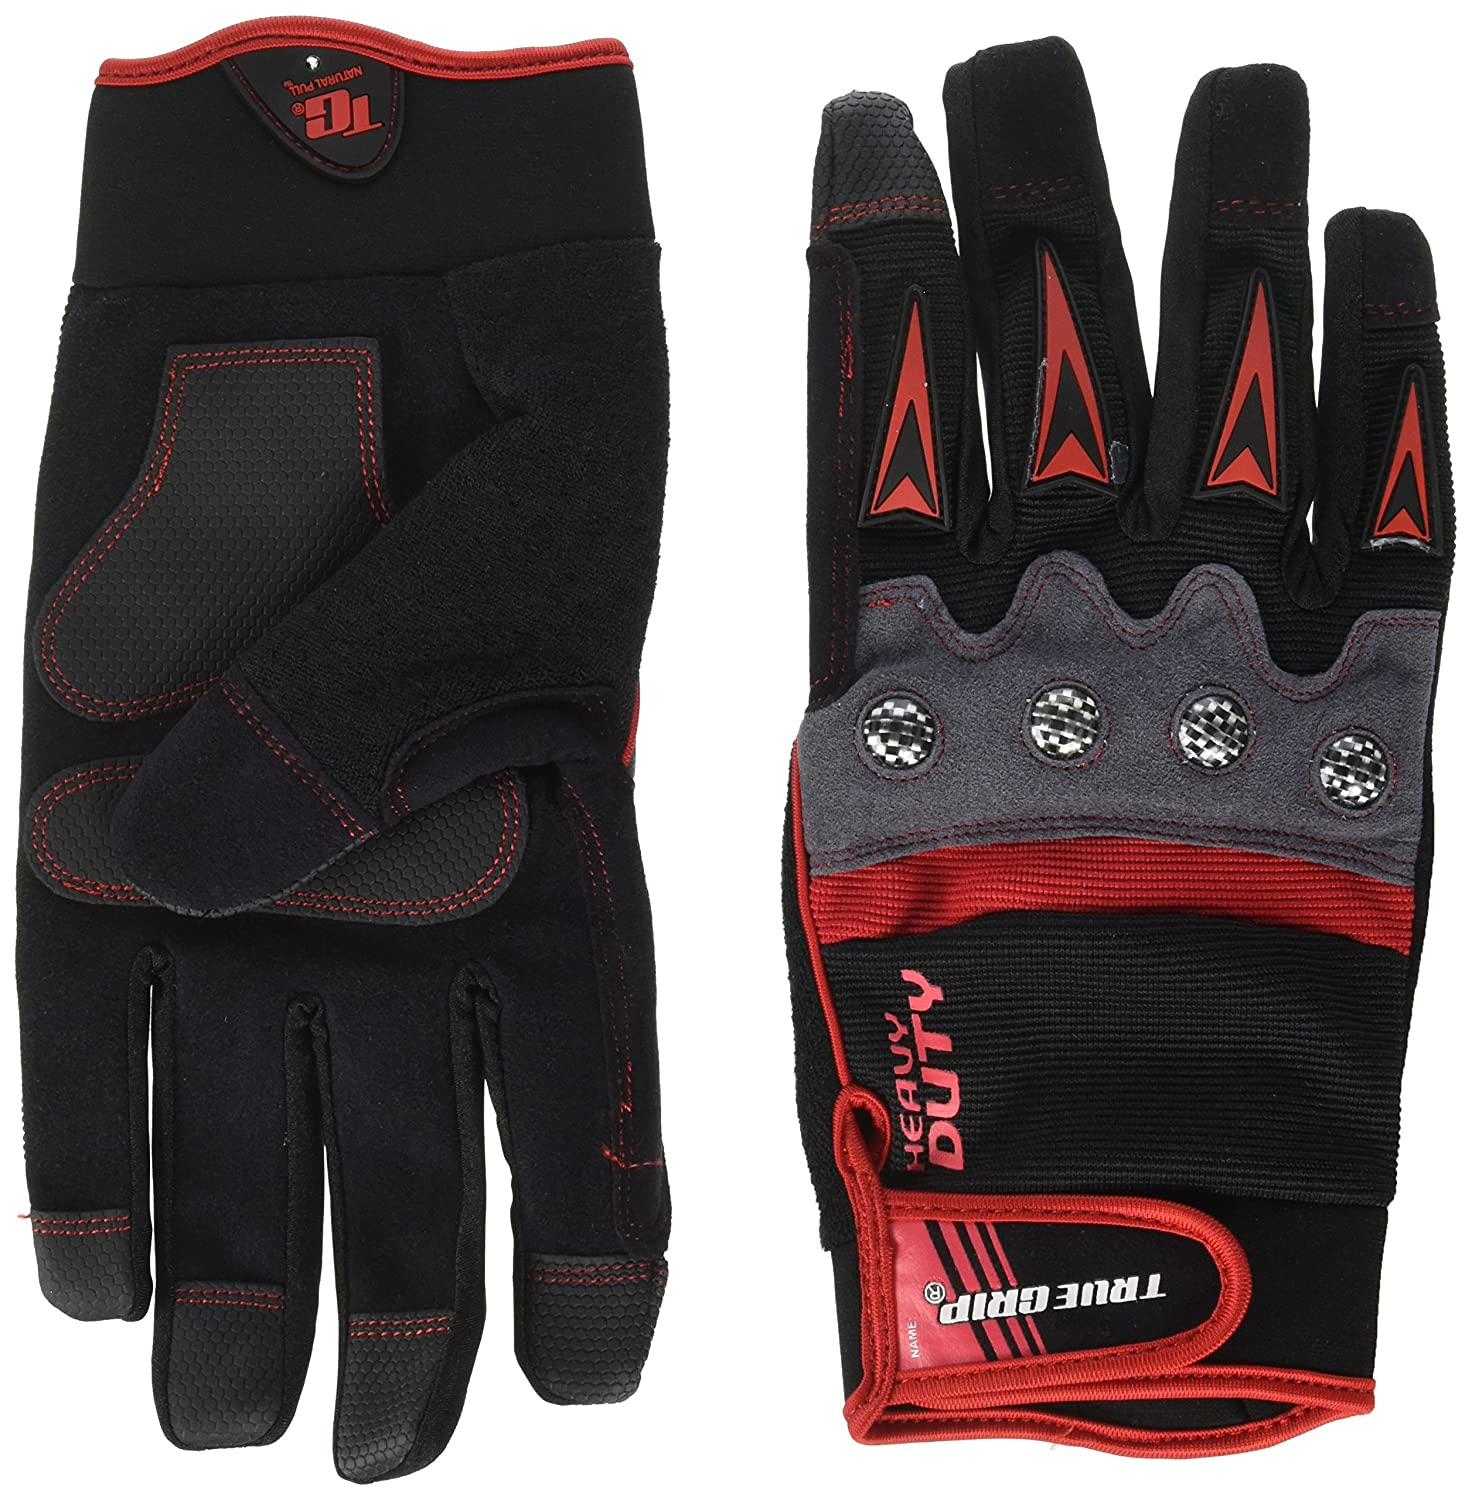 True Grip 9894-23 X-Large Heavy Duty Work Gloves with Touchscreen Fingers, Black/Red